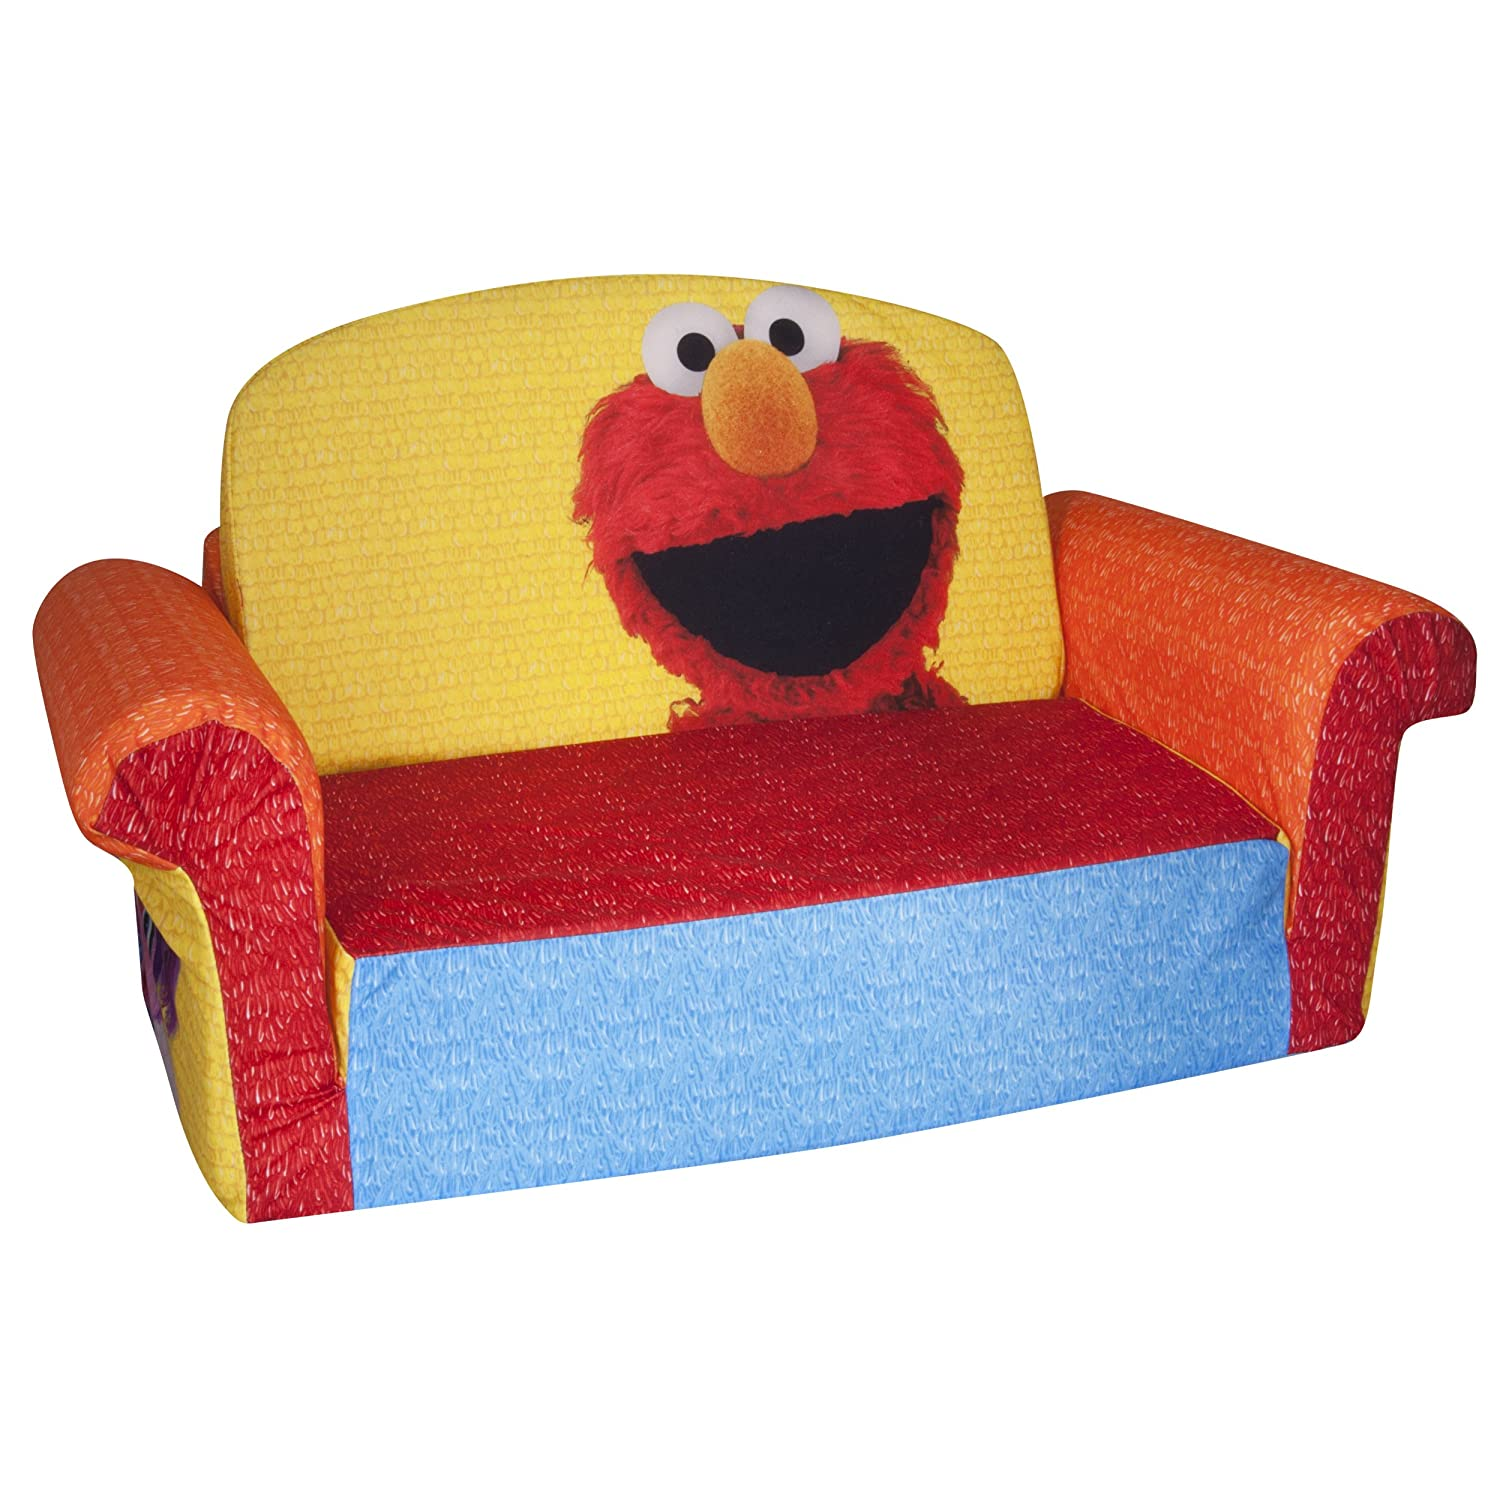 Amazon.com: Marshmallow Furniture, Childrenu0027s 2 In 1 Flip Open Foam Sofa,  Sesame Streetu0027s Elmo/Sesame, By Spin Master: Toys U0026 Games